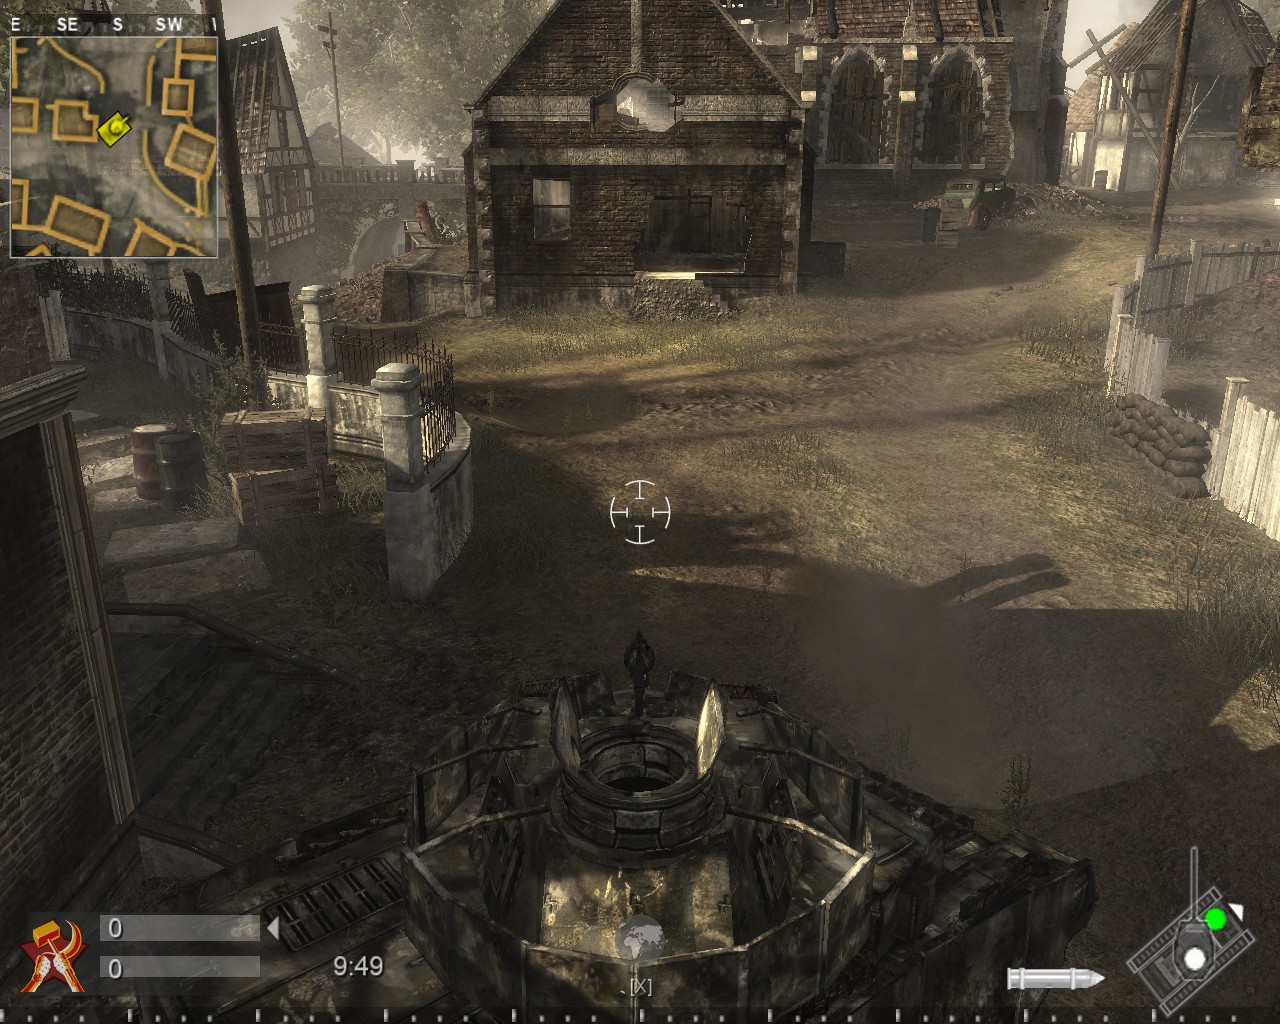 how to change world at war sound call of duty